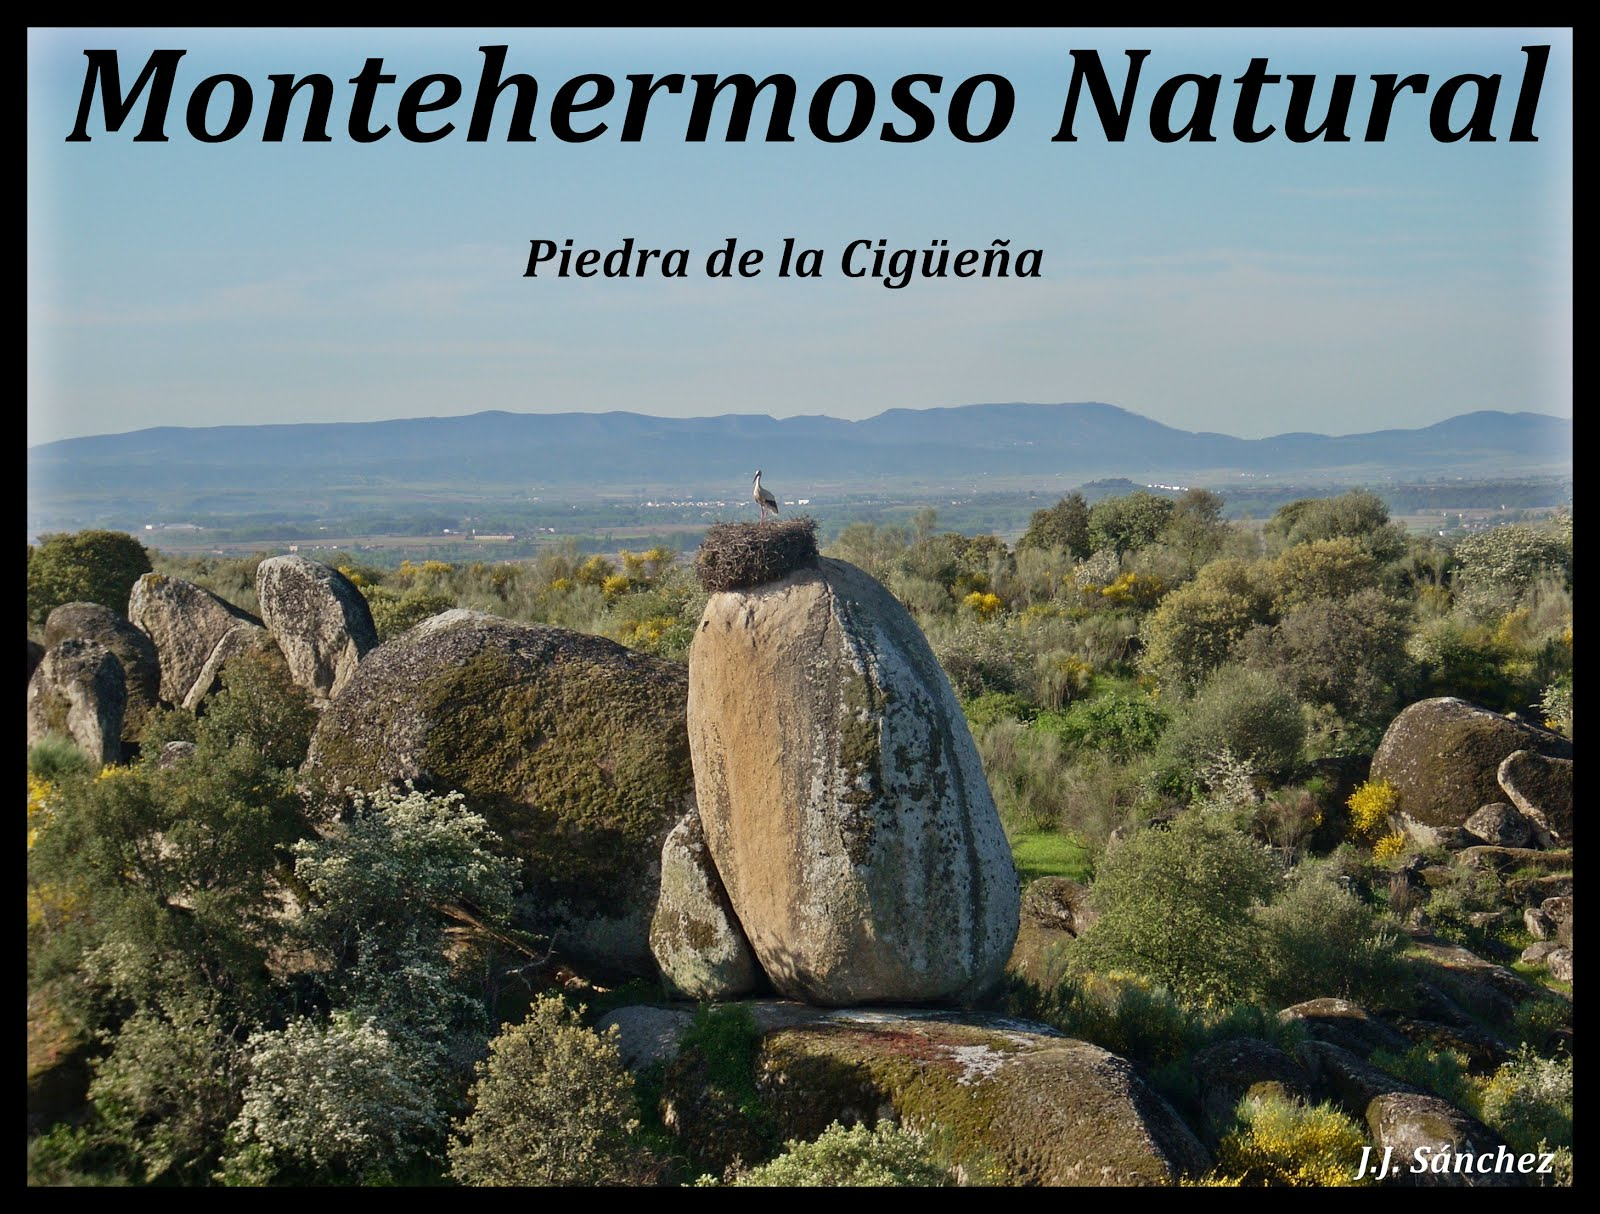 Montehermoso Natural en Facebook